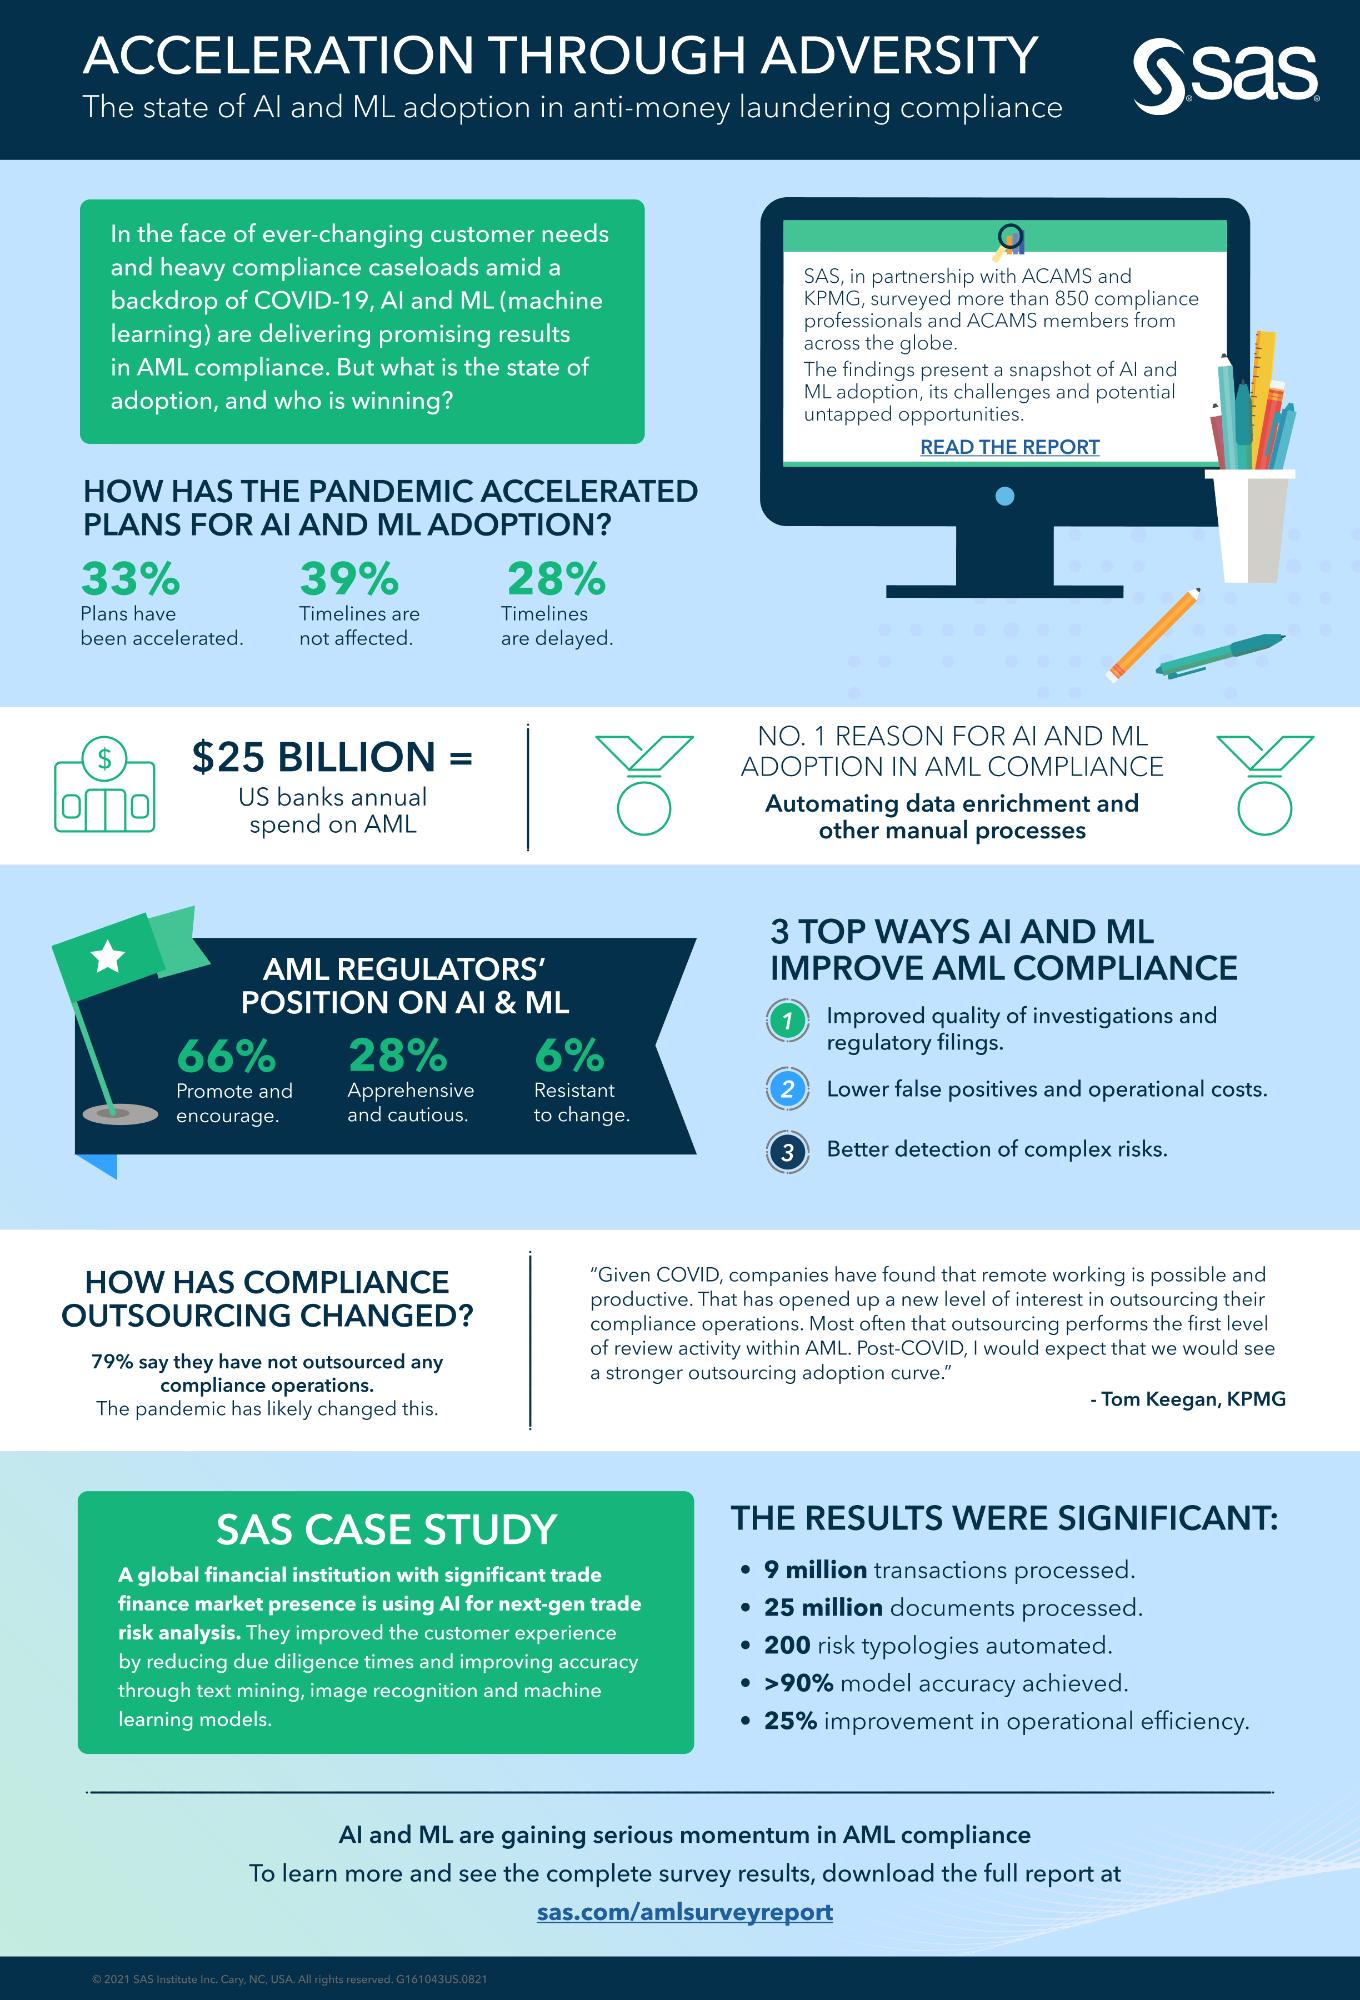 Highlights from the global AML technology study by SAS, KPMG and ACAMS.